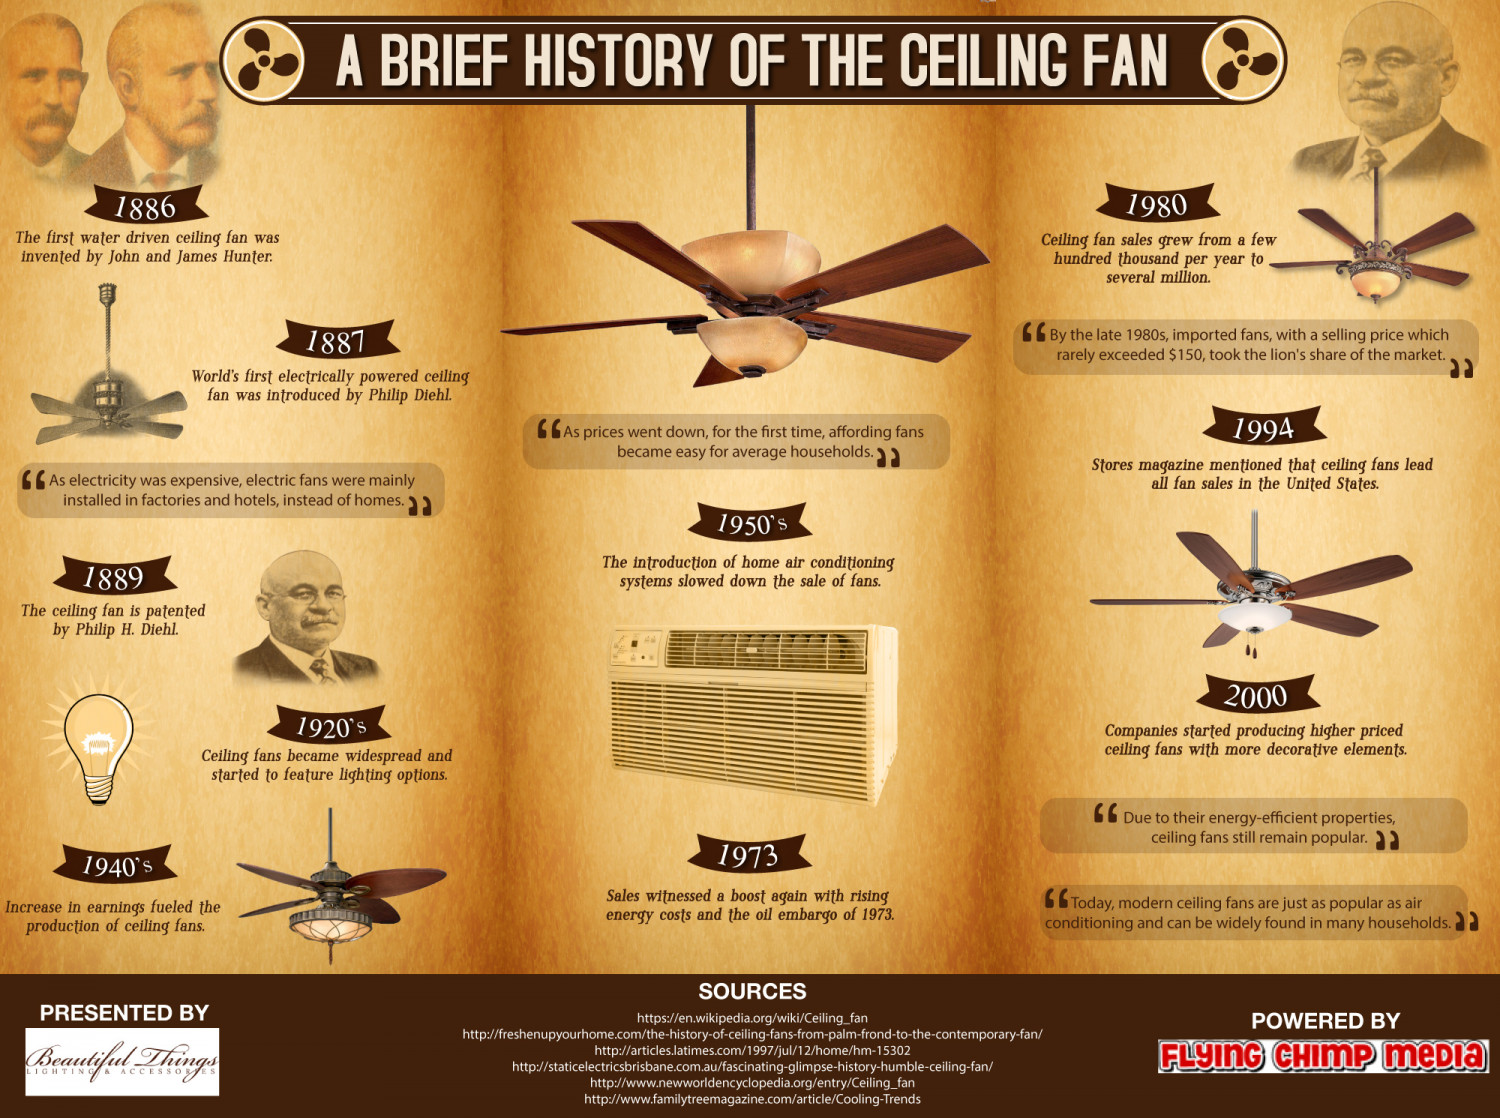 A brief history of the ceiling fan visual a brief history of the ceiling fan infographic aloadofball Choice Image